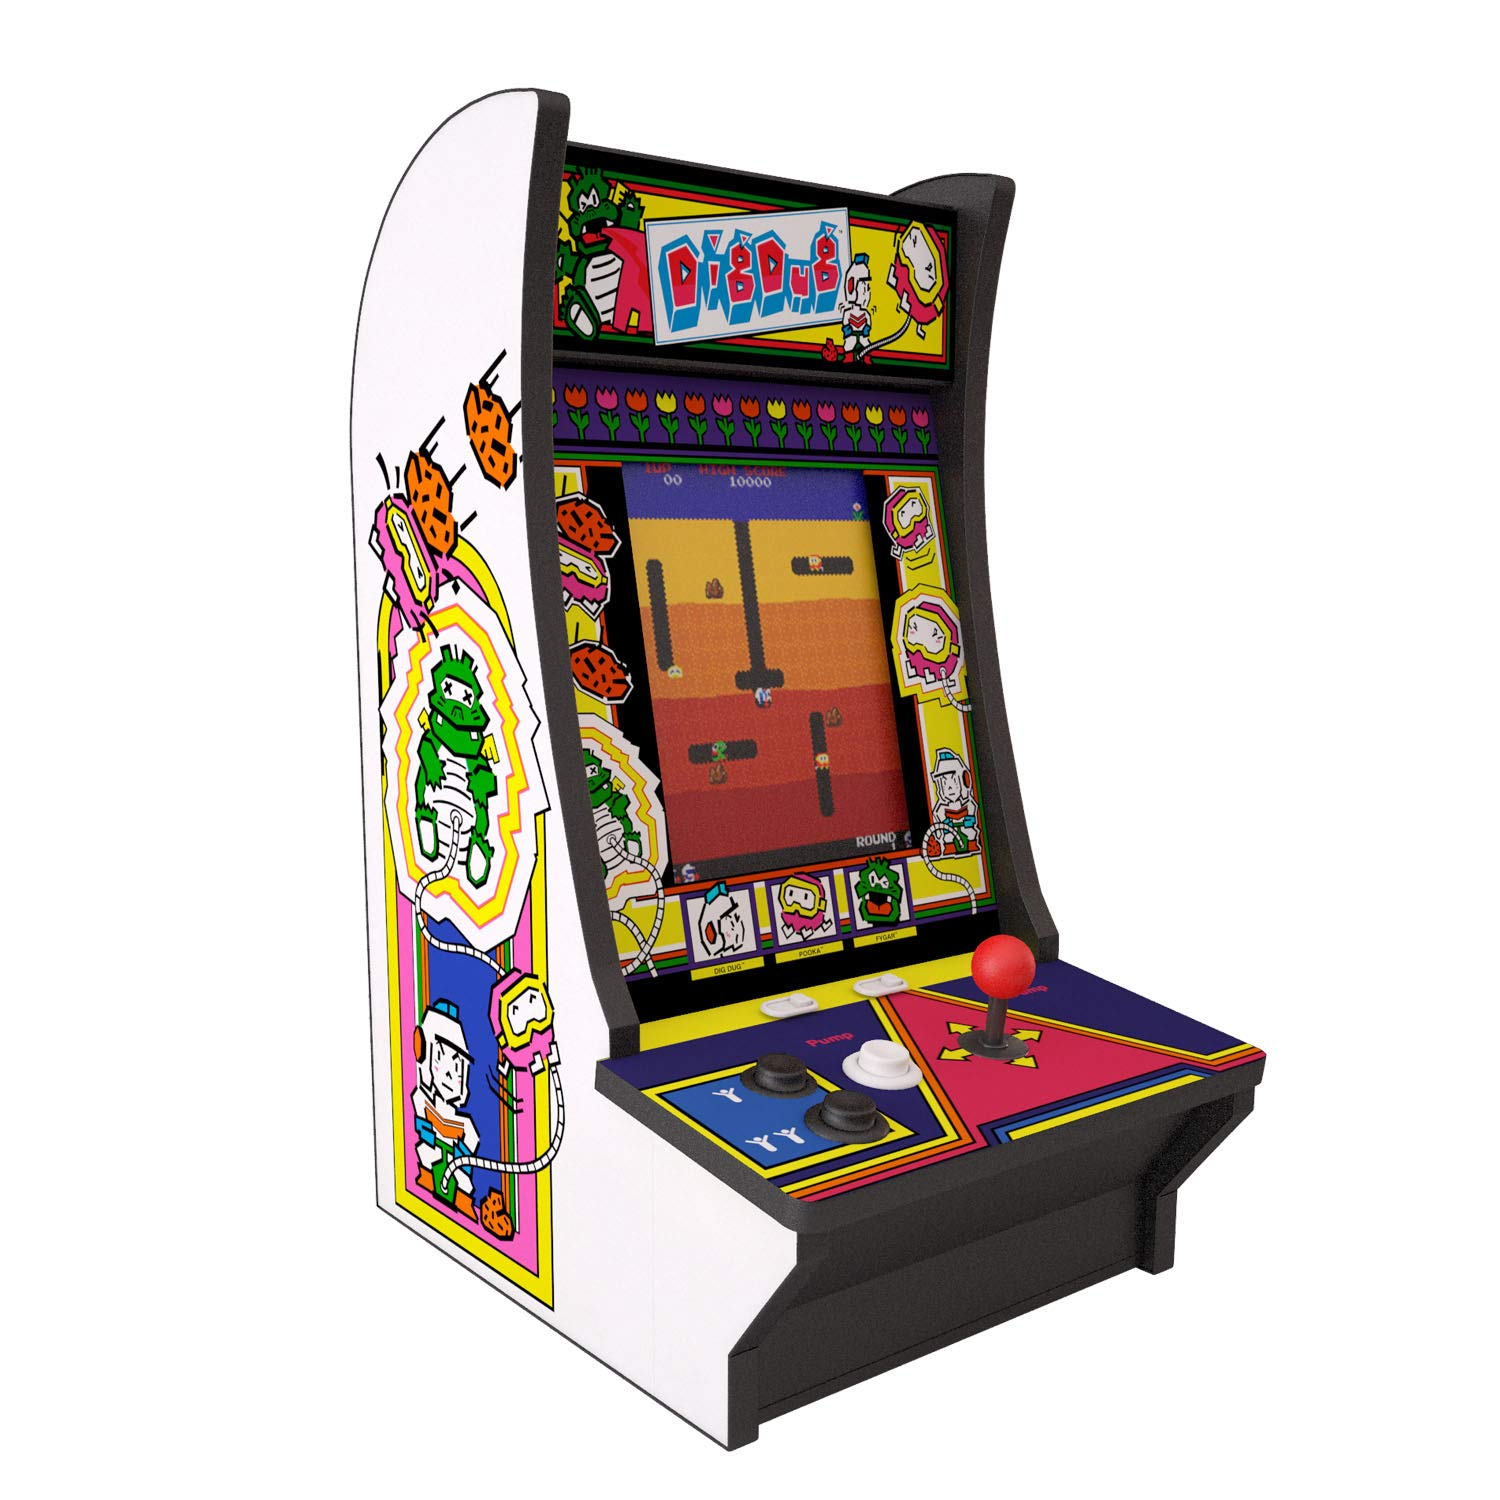 Arcade1Up - Dig Dug Countercade (Model 815221026889)